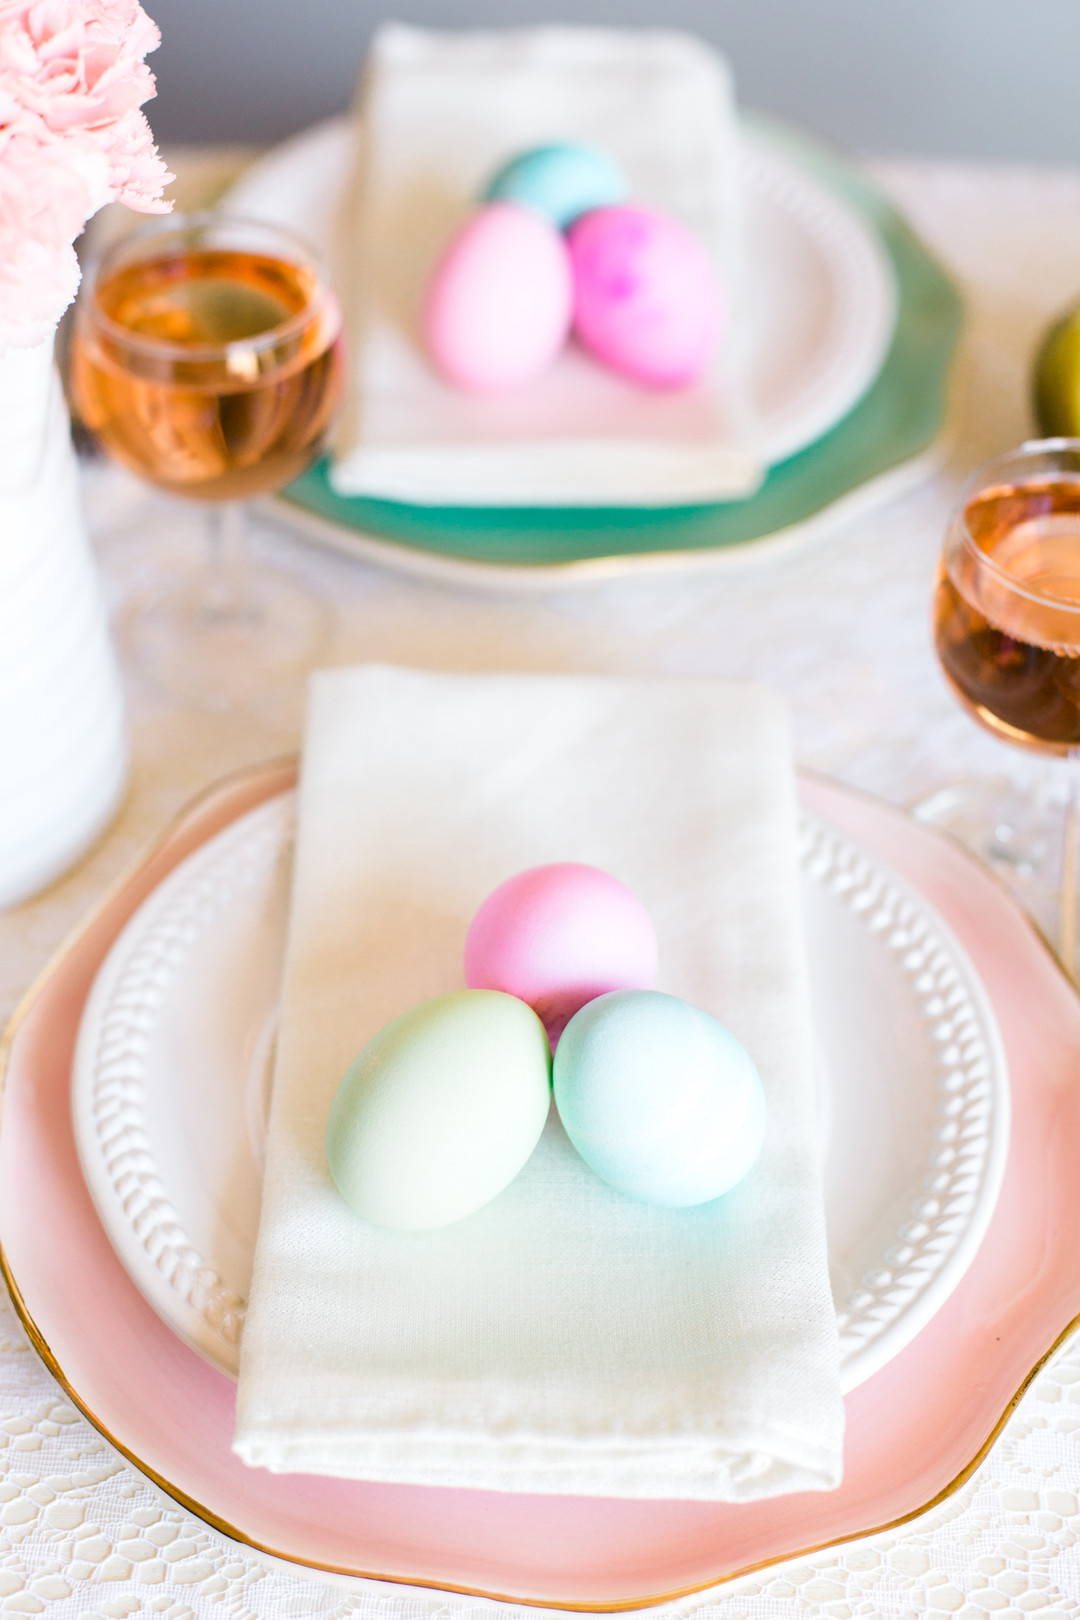 Staal_KristinaStaalPhotography_KristinaStaalPhotographyEasterTablescape20168_big Easy Entertaining: Easter Brunch Inspiration for Two